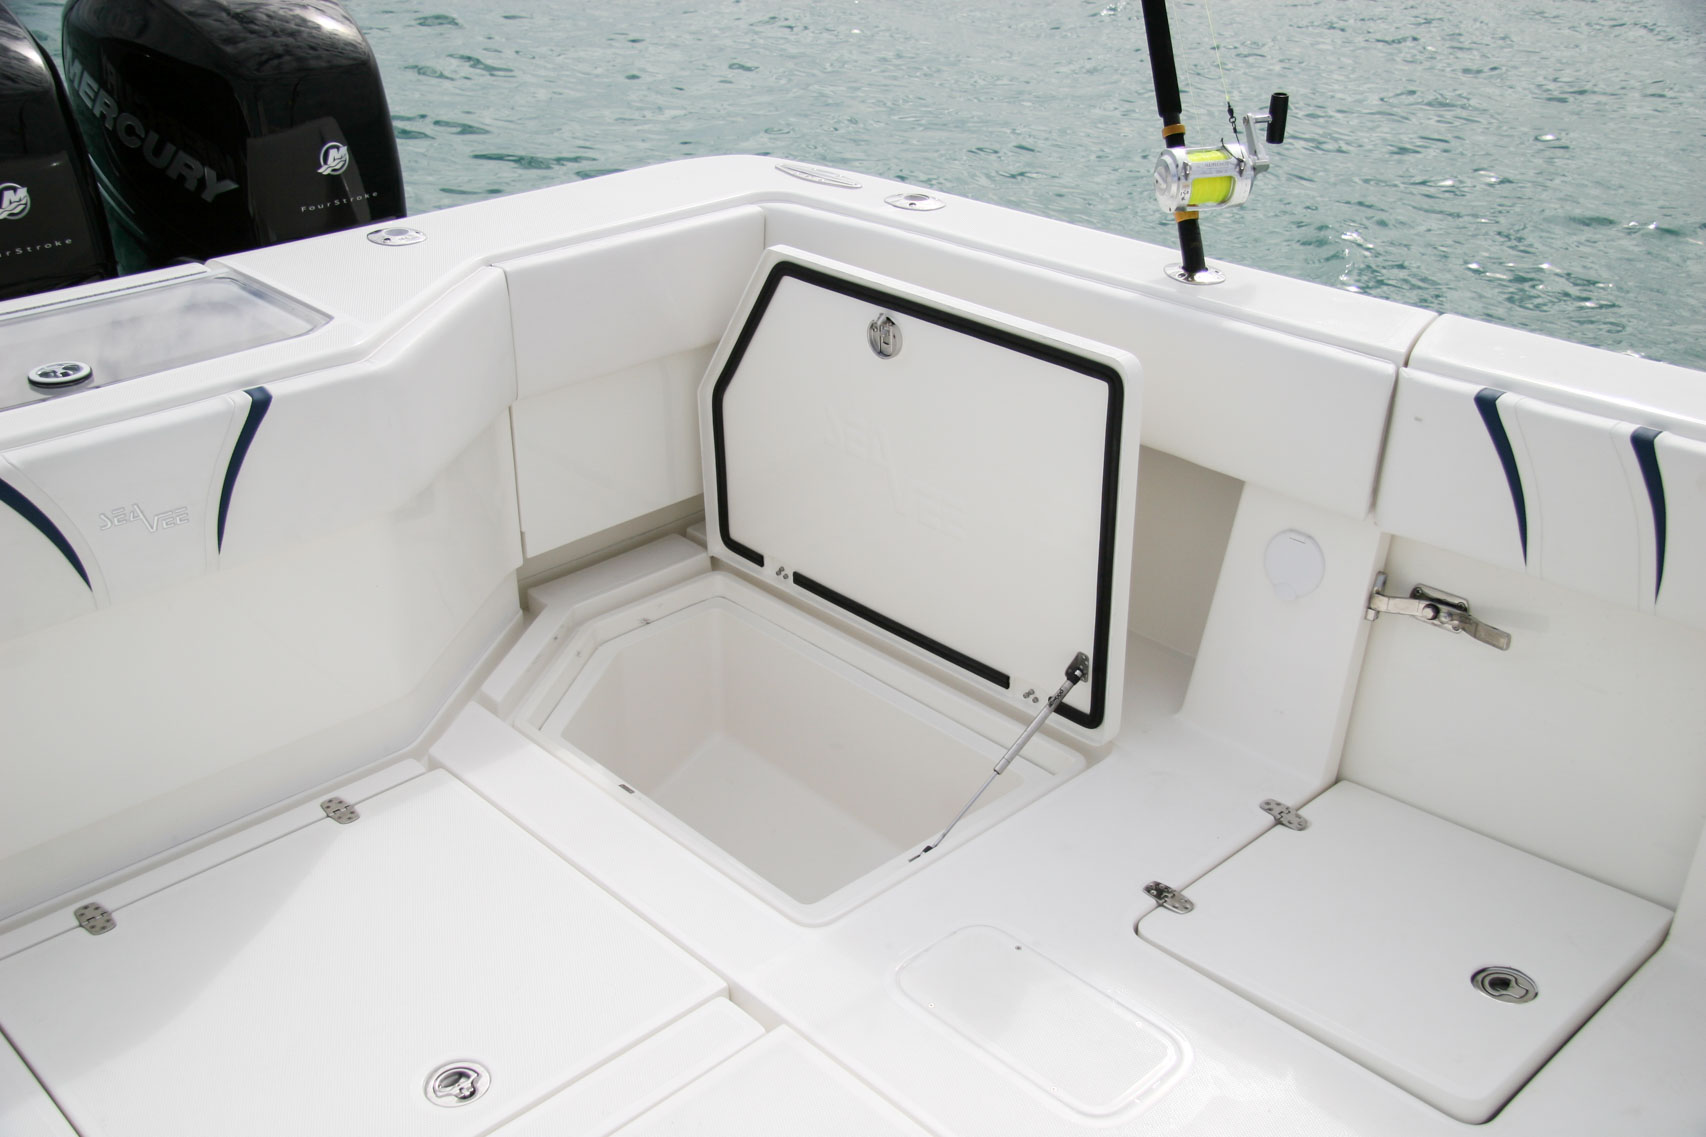 Center consoles 390z details seavee boats for Fish box for boat